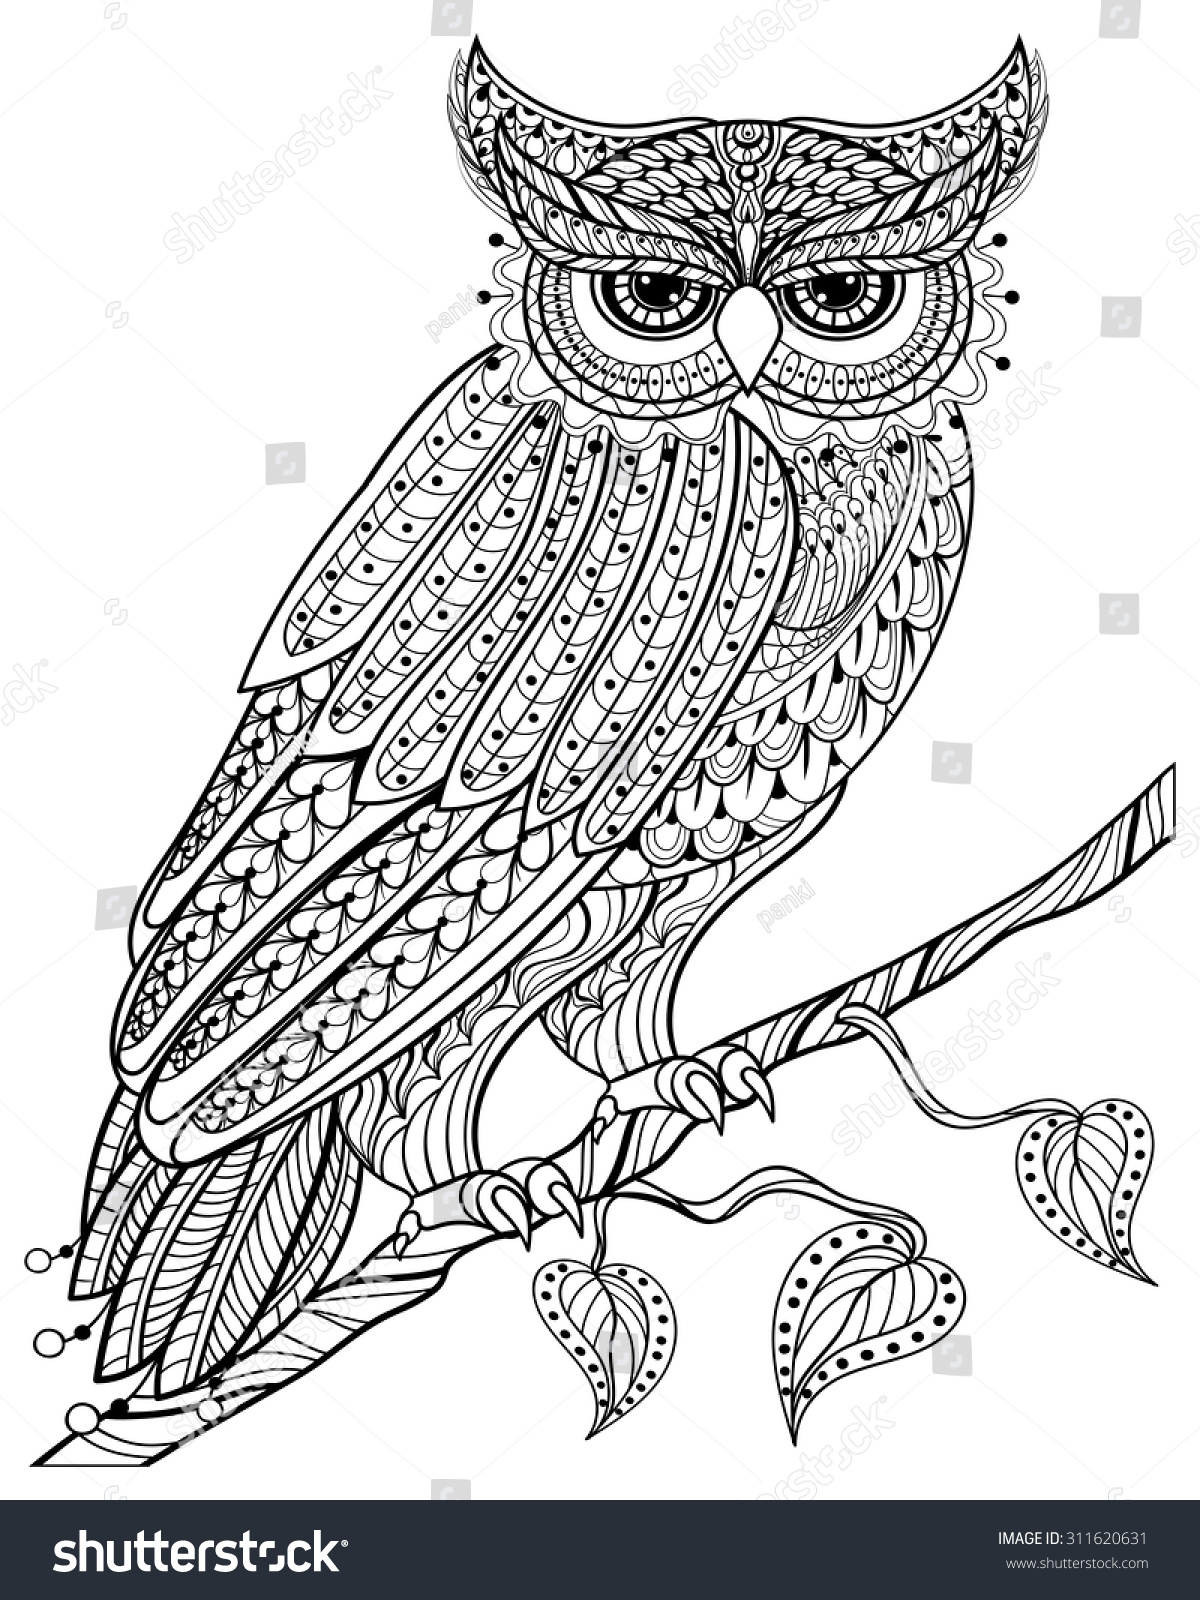 Anti stress colouring book free - Anti Stress Colouring Books For Adults Zentangle Magic Owl Sitting On Branch For Adult Anti